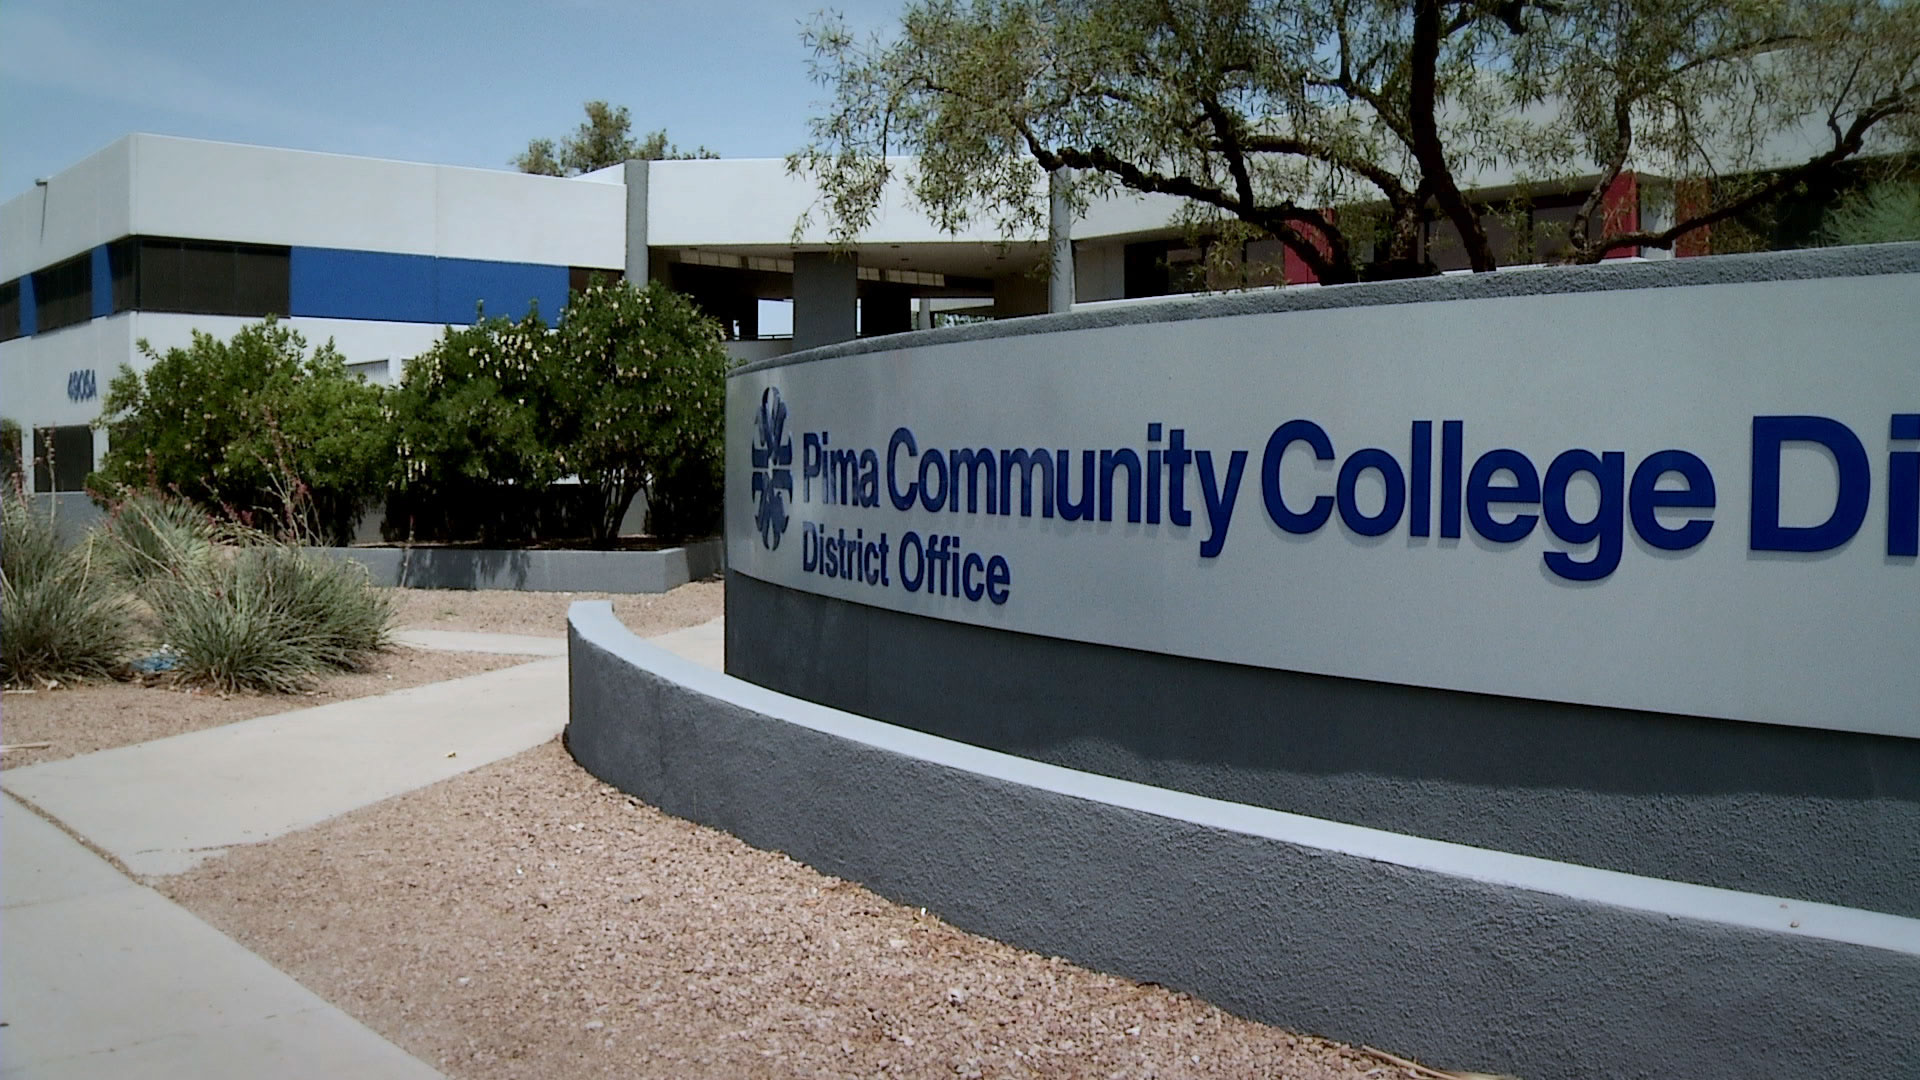 Pima Community College district office.